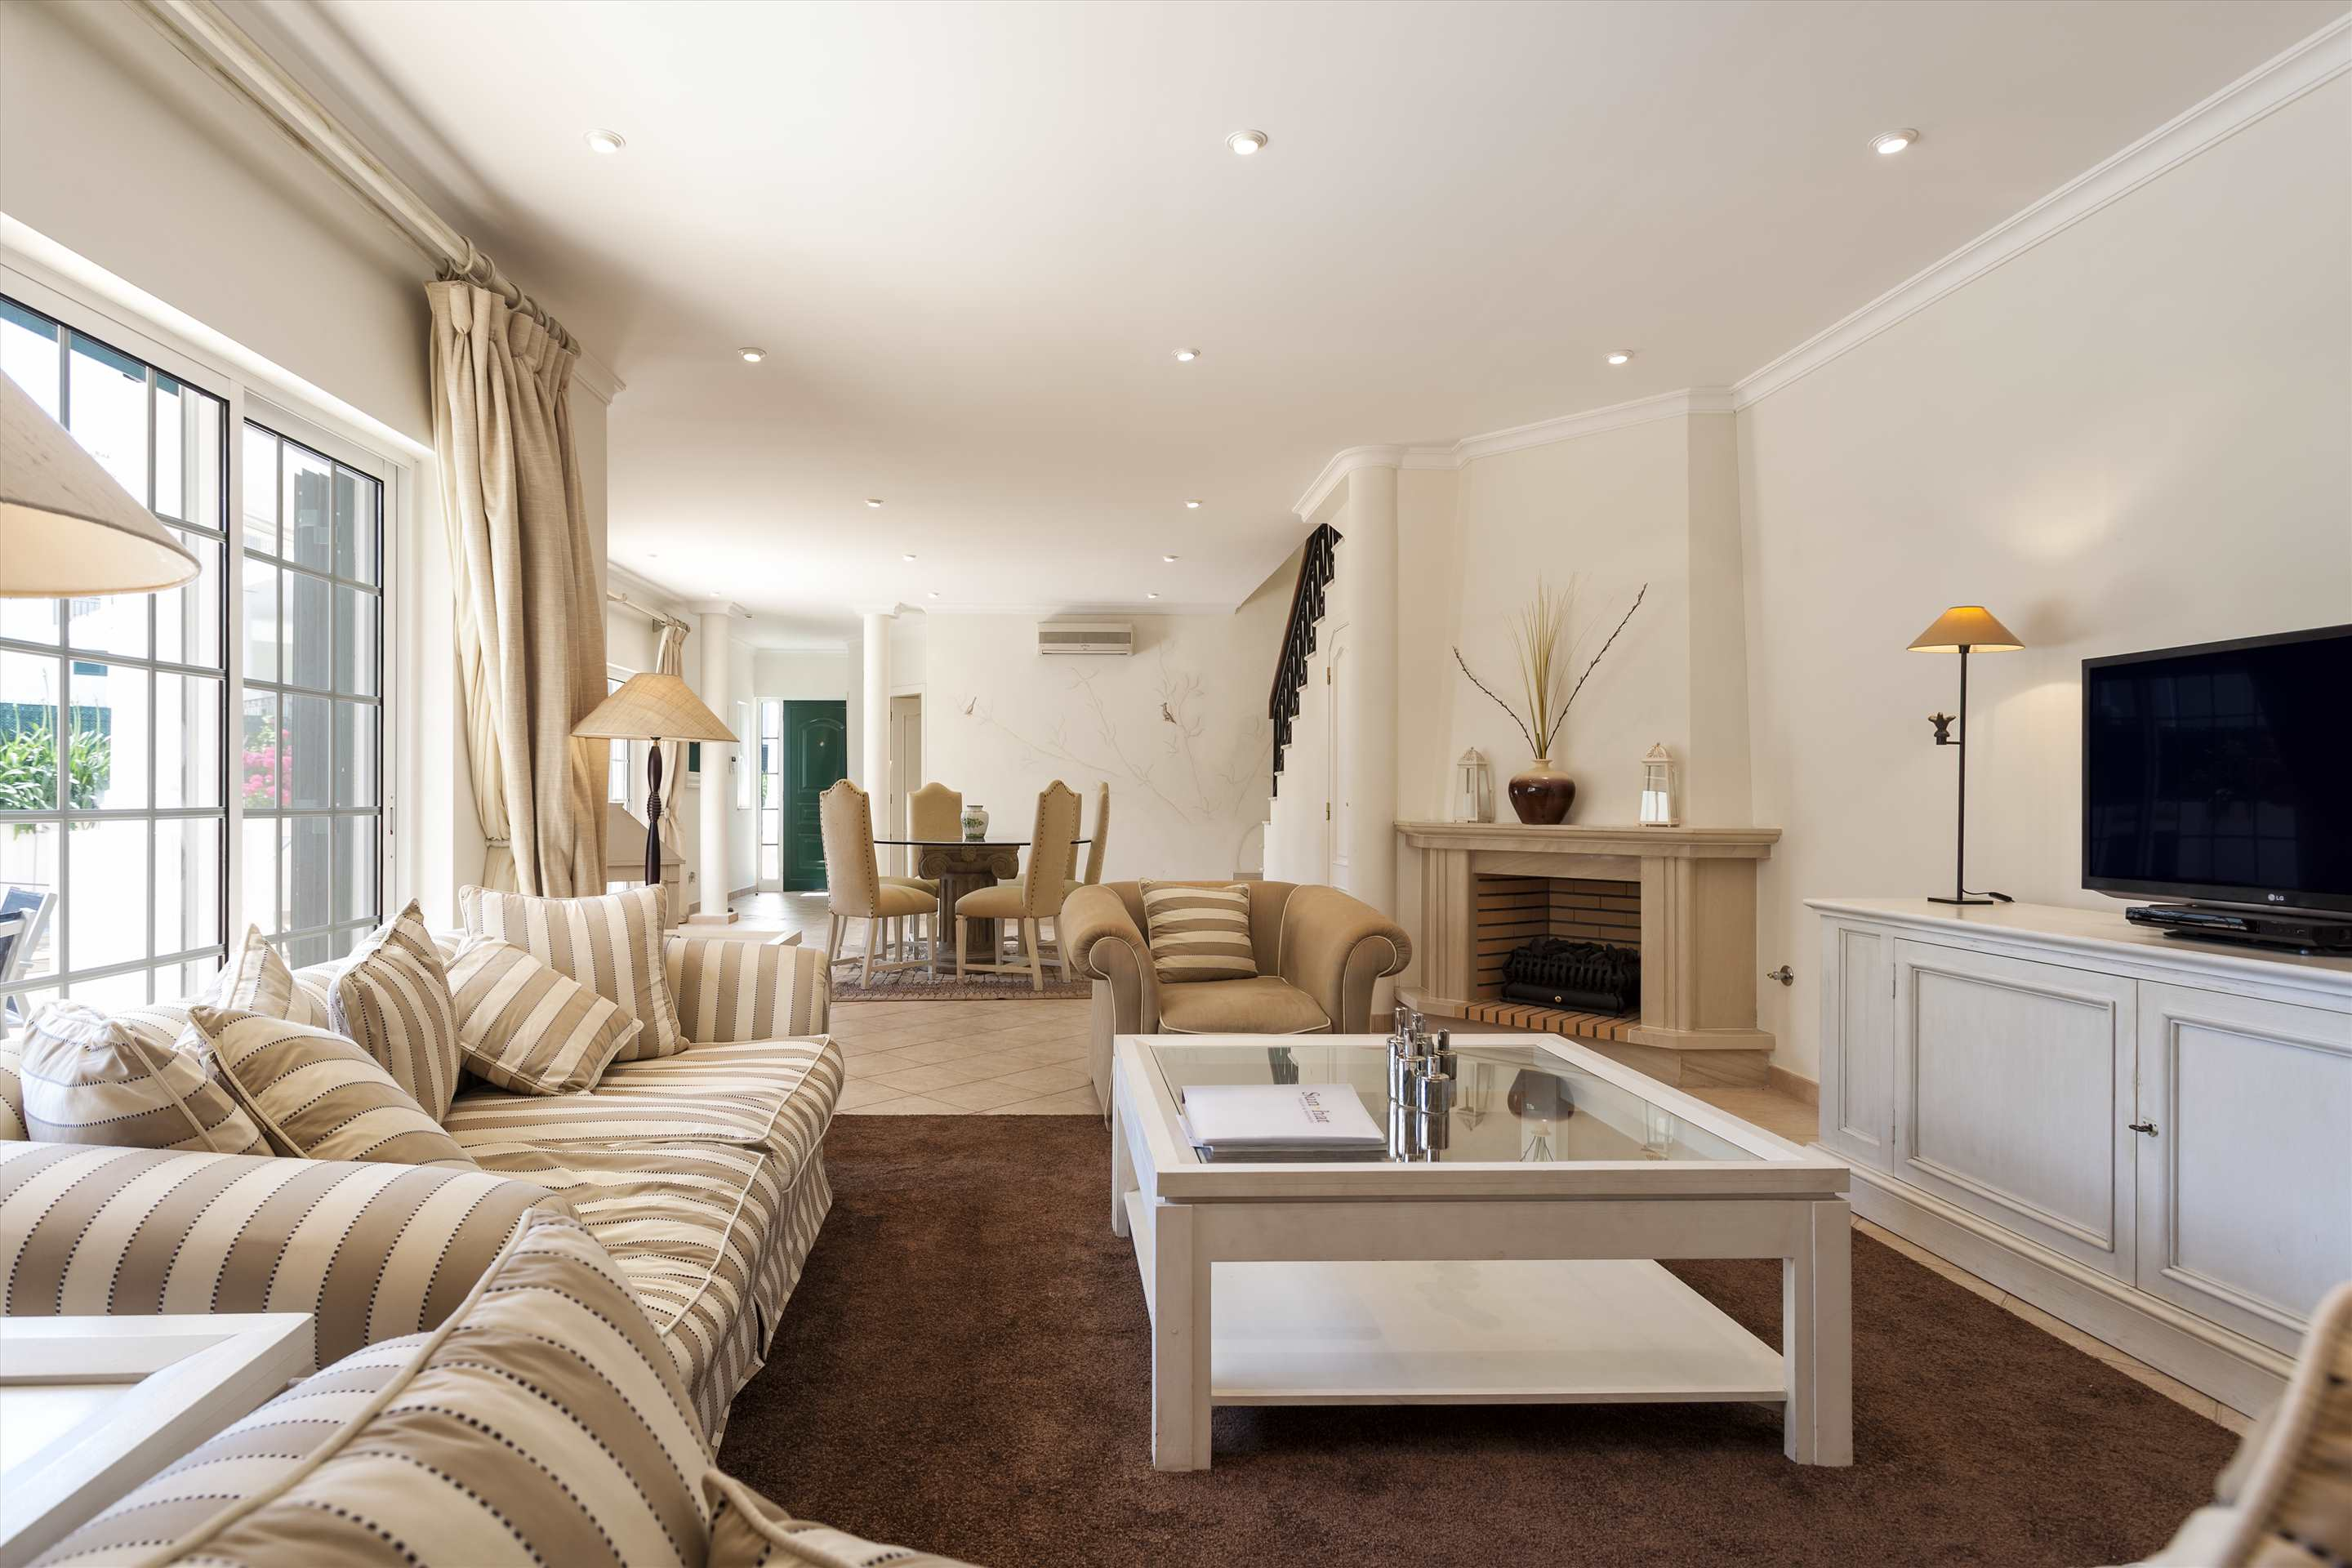 Villa Catarina, 3 bedroom apartment in Vale do Lobo, Algarve Photo #4